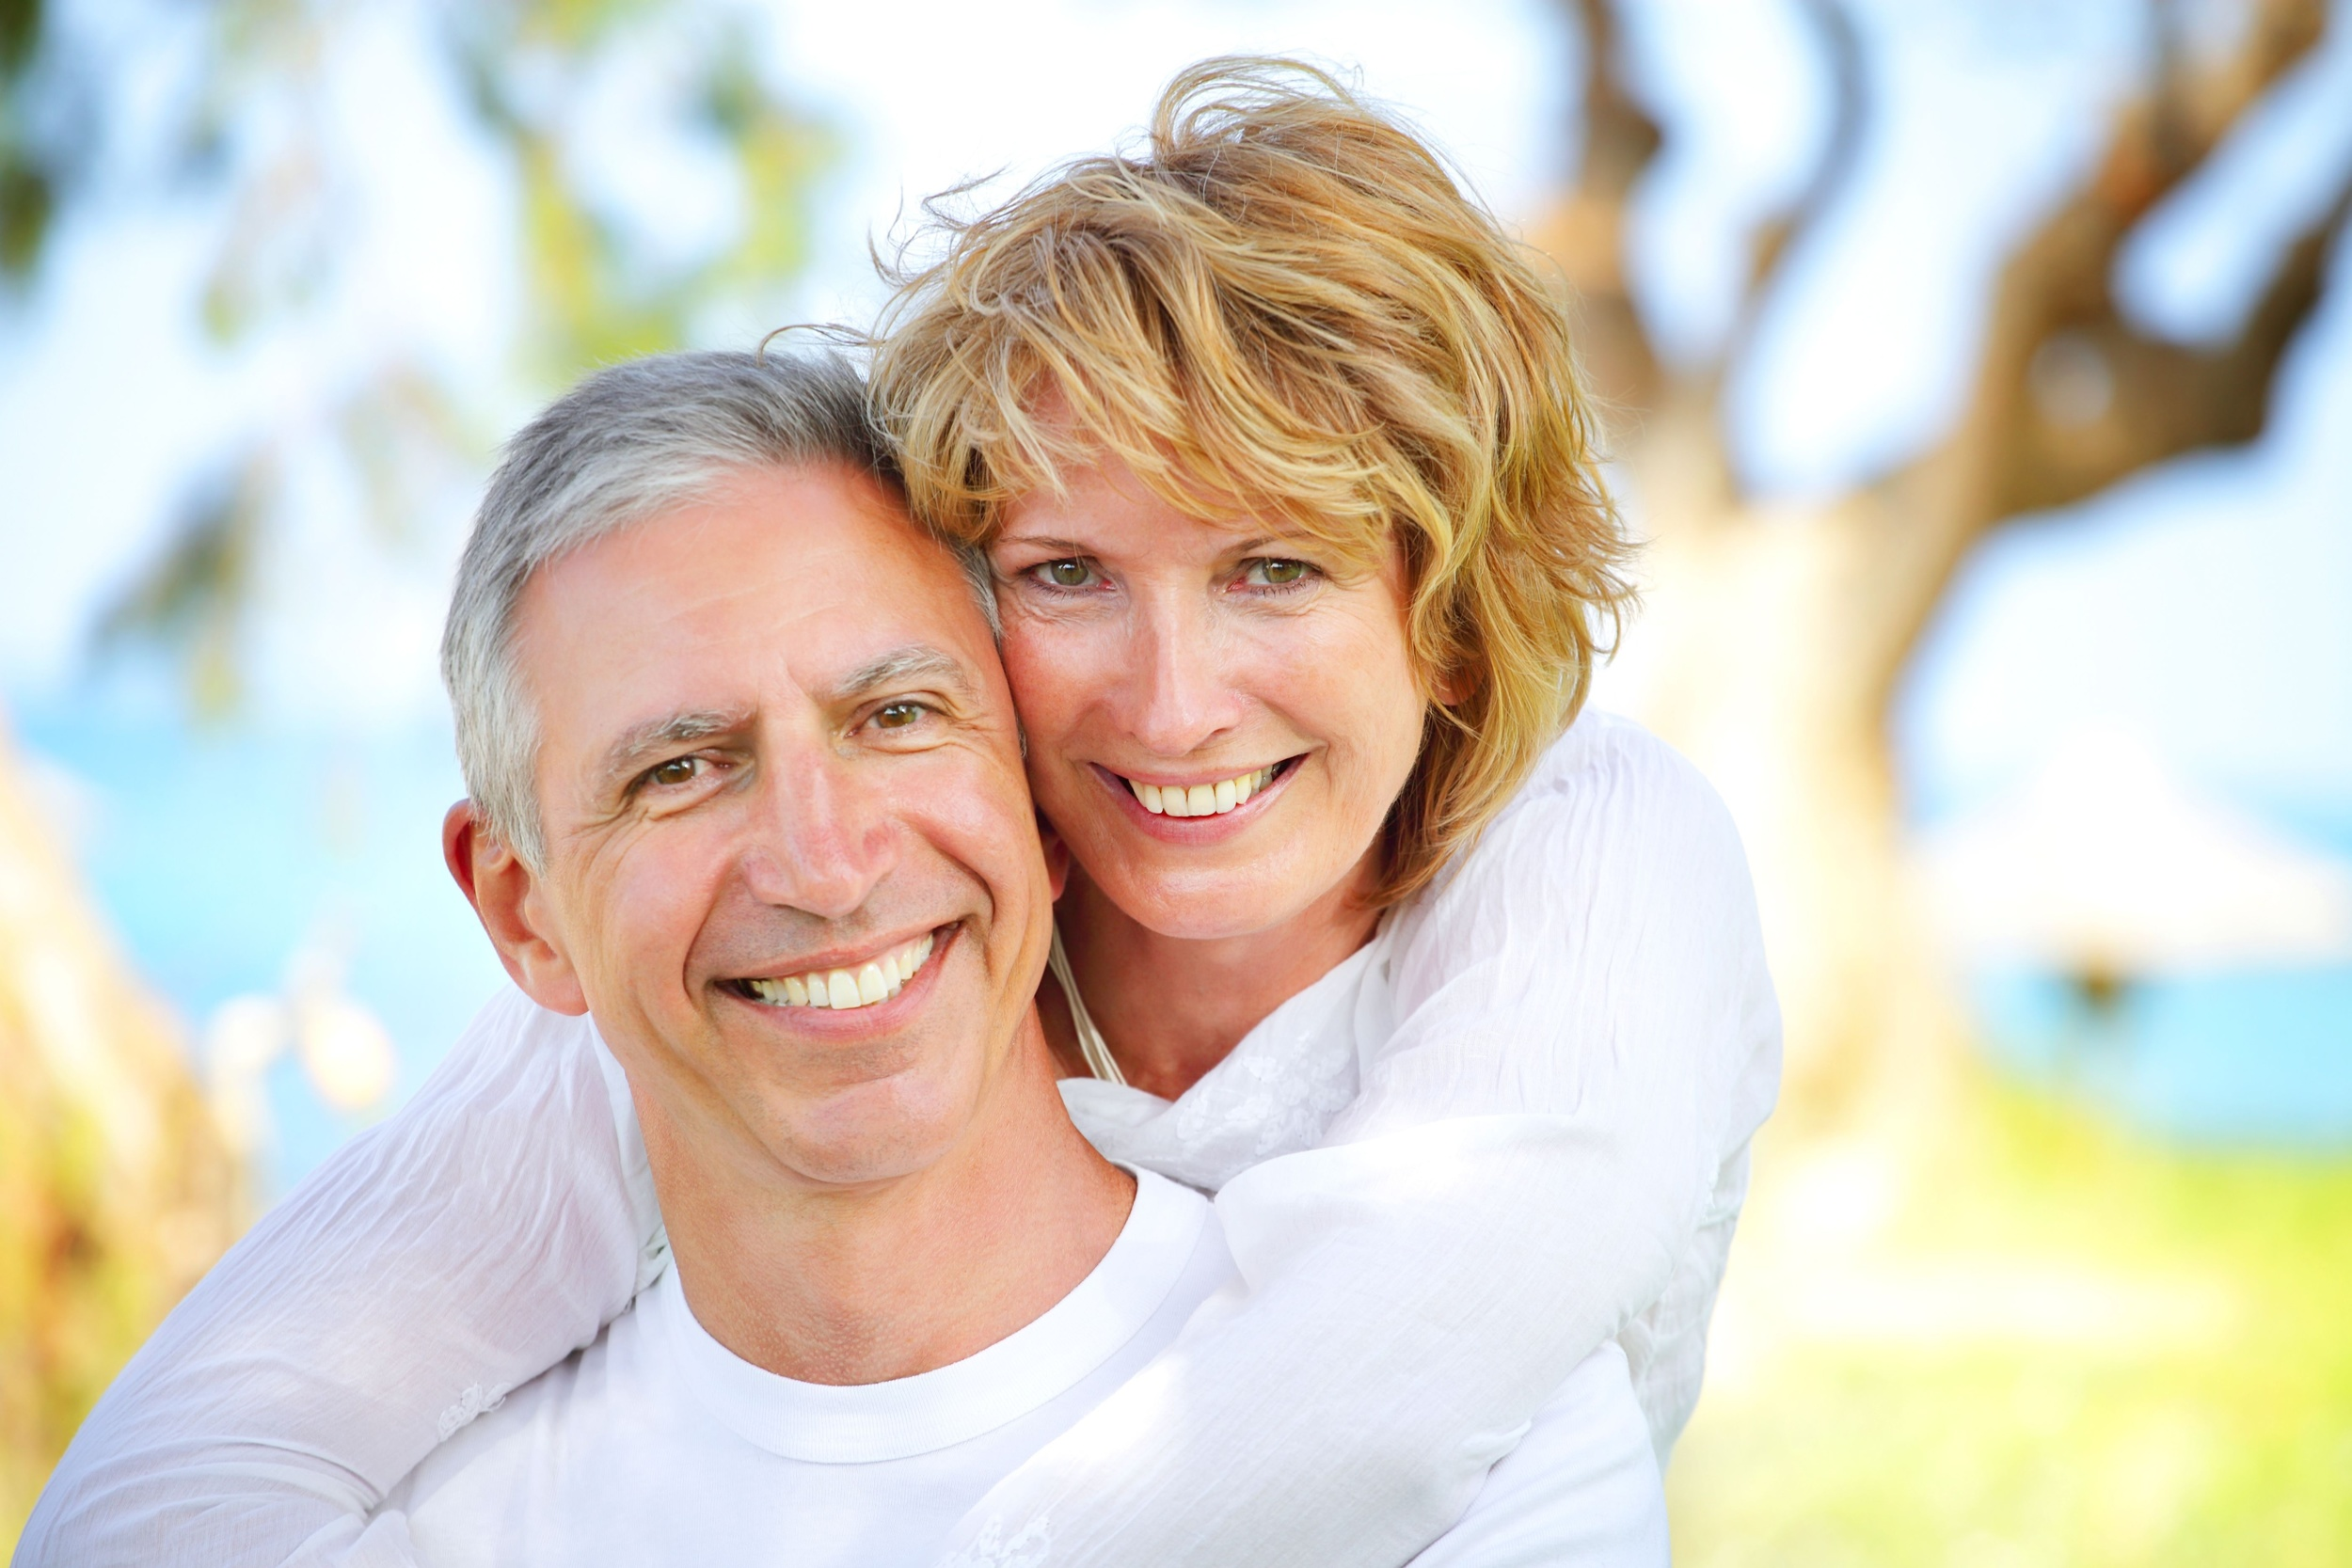 Brilliant dental provides cosmetic dentistry services such as veneers, composite fillings, teeth whitening, and crowns.